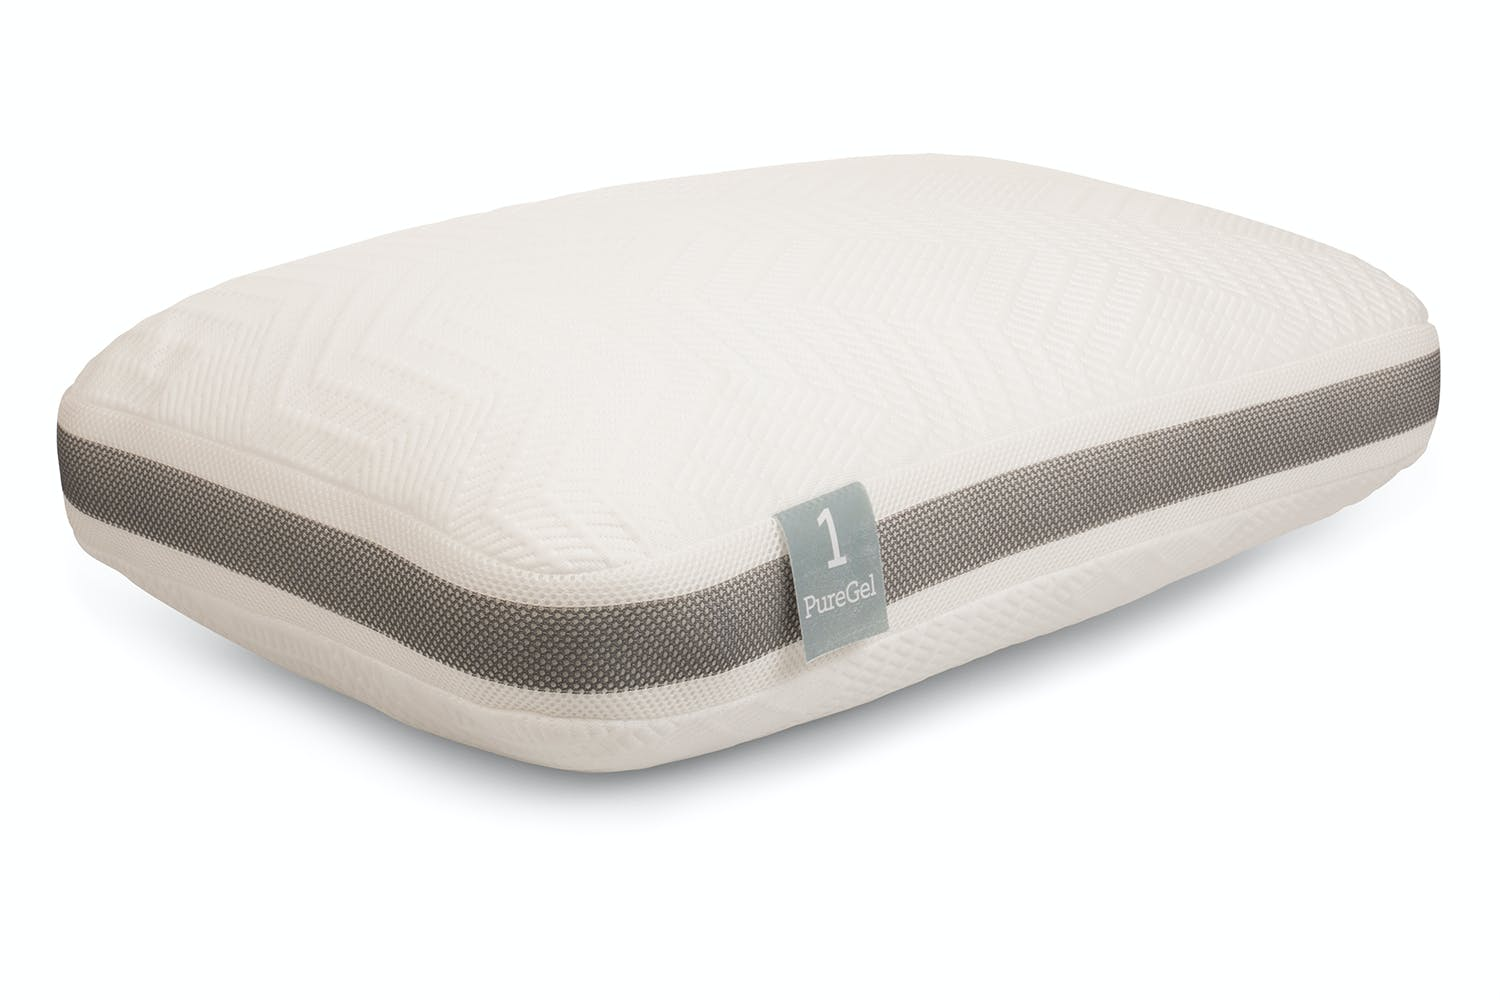 Sleep Studio Pillow | PureGel | 1